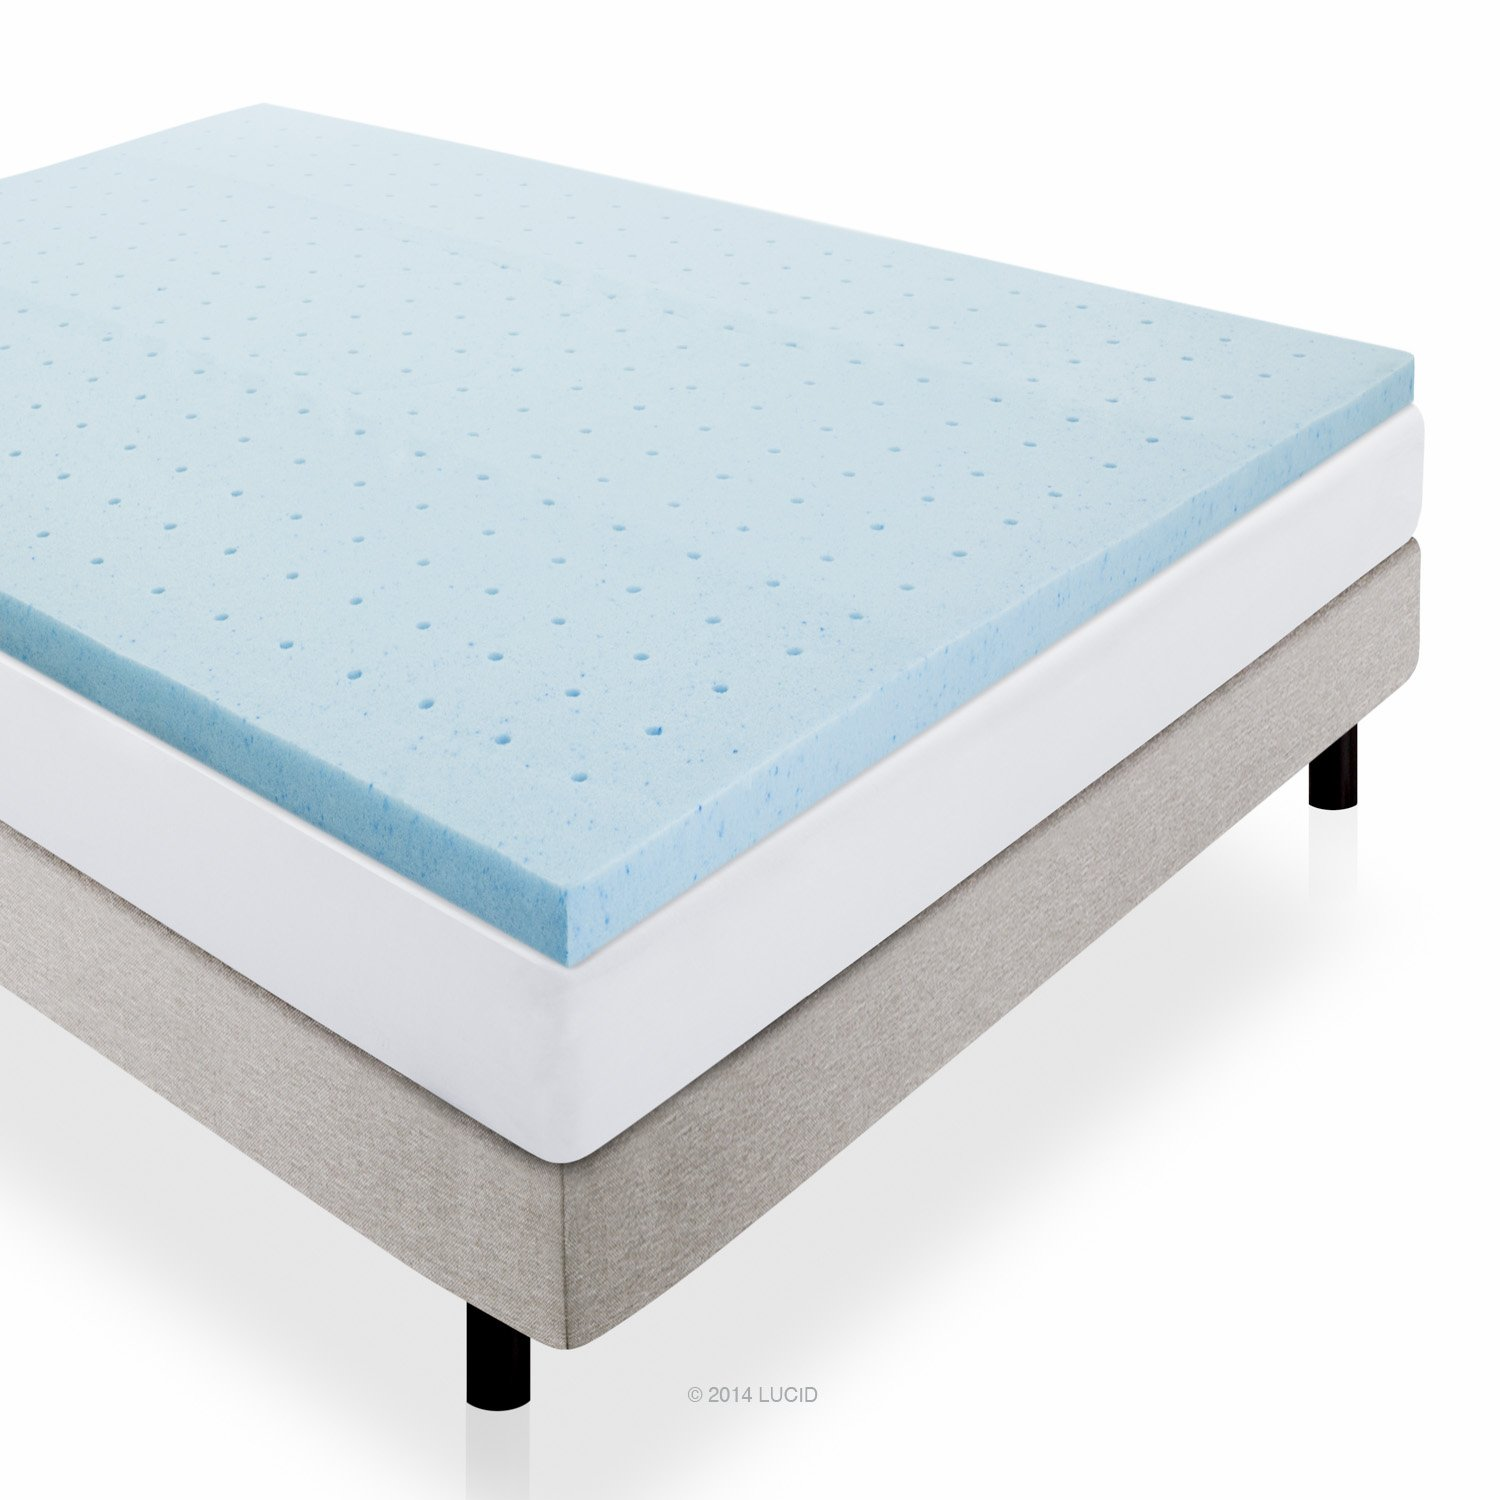 LUCID 2 Inch Gel Infused Ventilated Memory Foam Mattress Topper – 3-Year Warranty – Queen